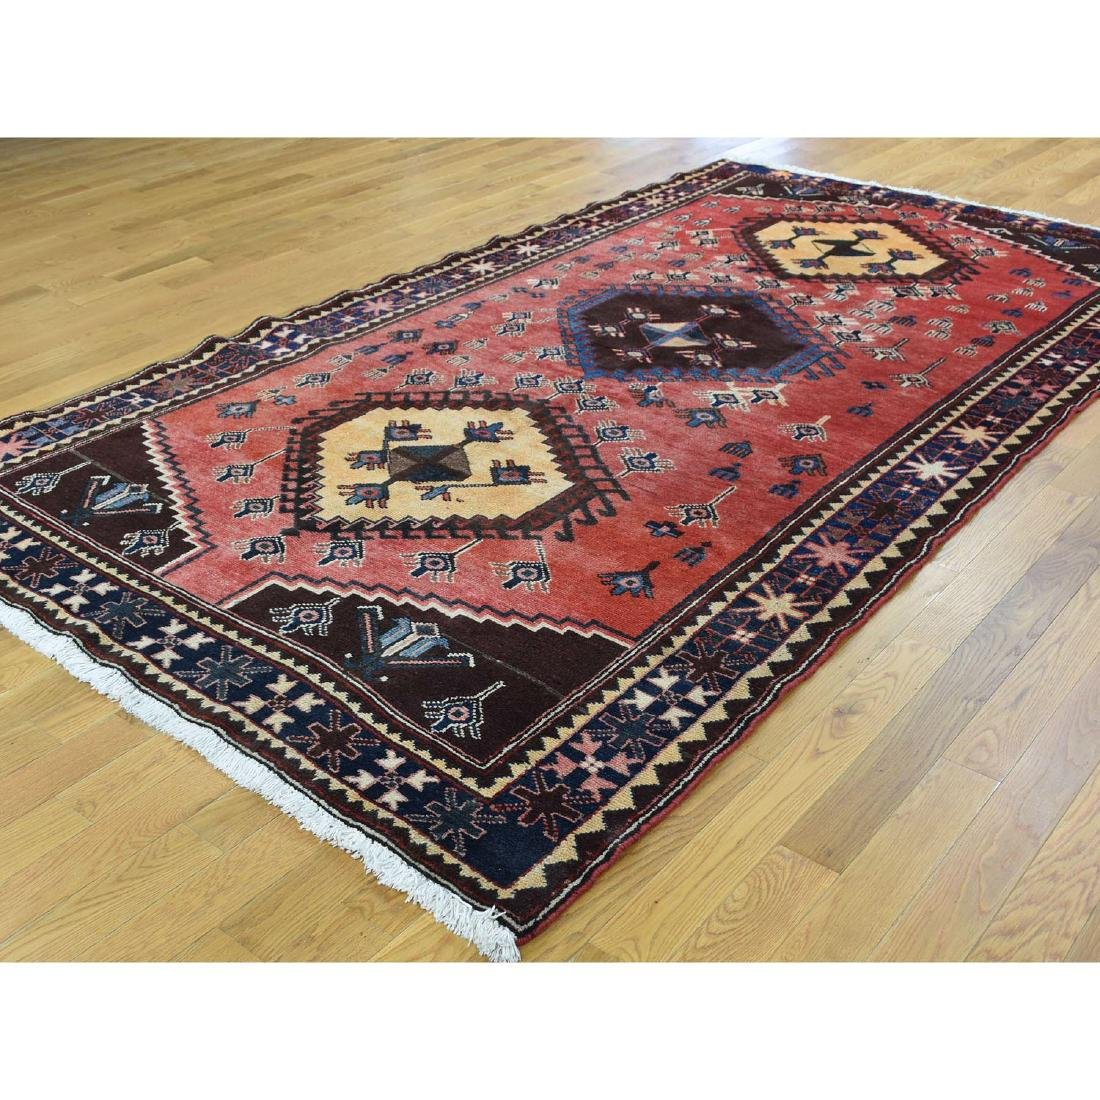 Semi Antique Persian Afshar Full Pile Mint Condition - 3